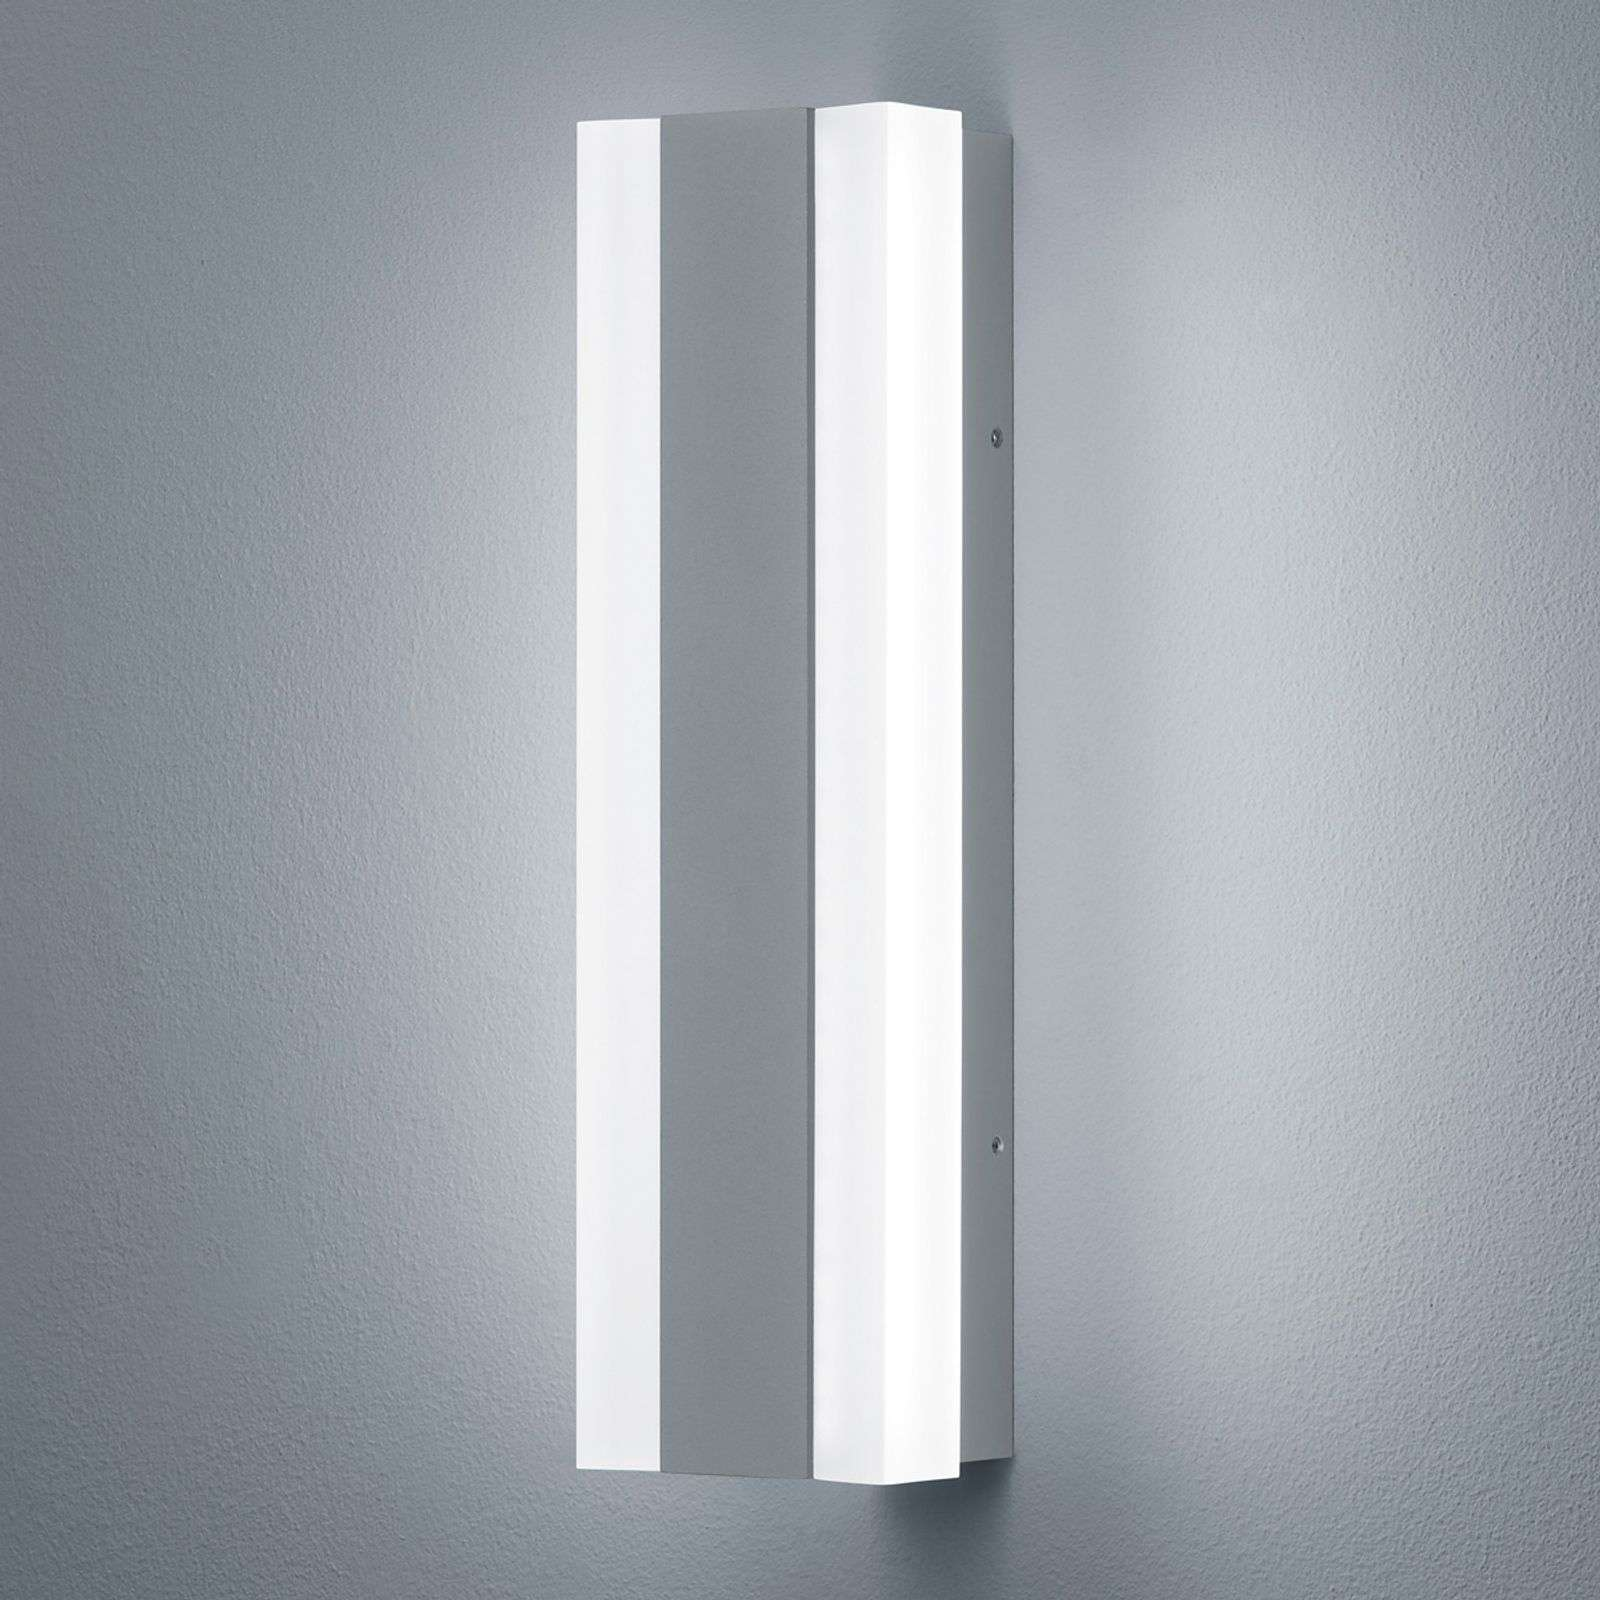 Applique da esterni LED Road grigio argentato